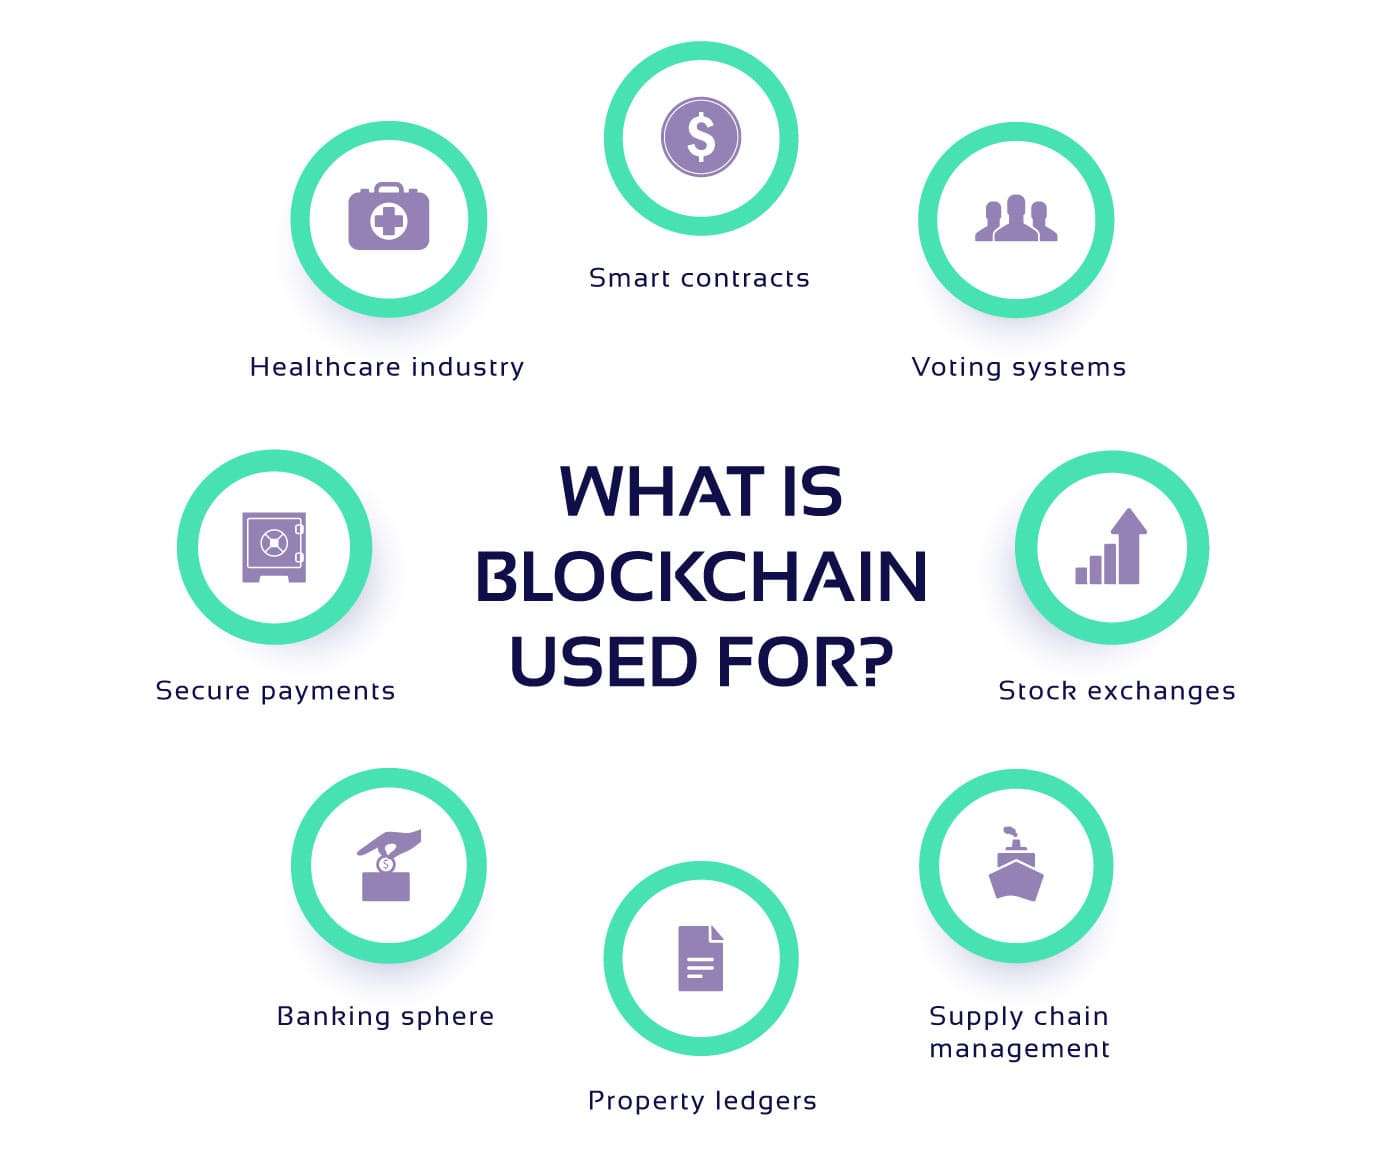 Diagram of possible uses for blockchains